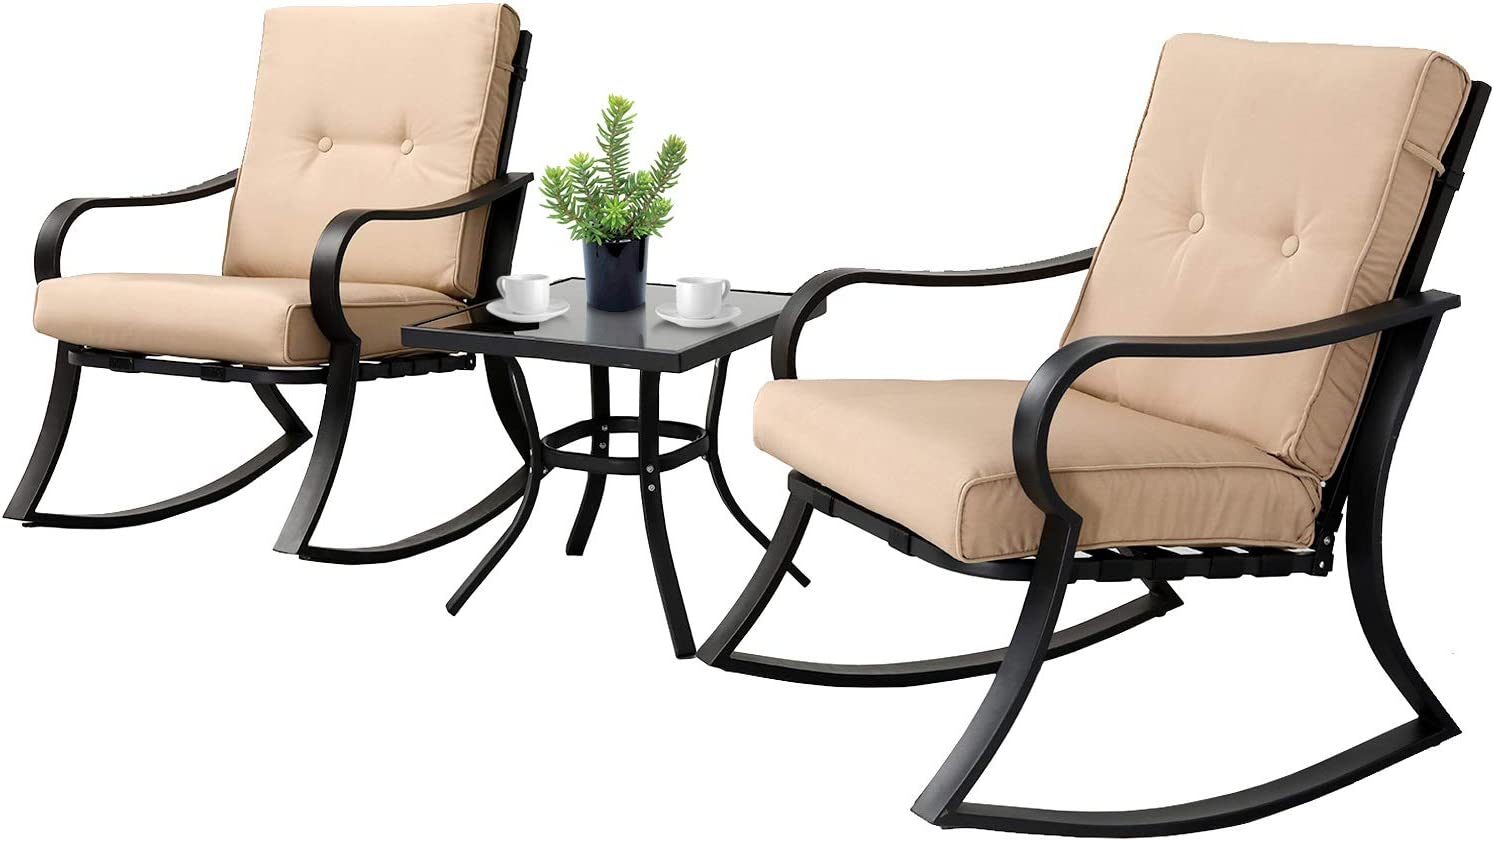 SOLAURA 3-Piece Outdoor Rocking Chairs Bistro Set, Black Steel Patio Furniture with Brown Thickened Cushion Glass-Top Coffee Table